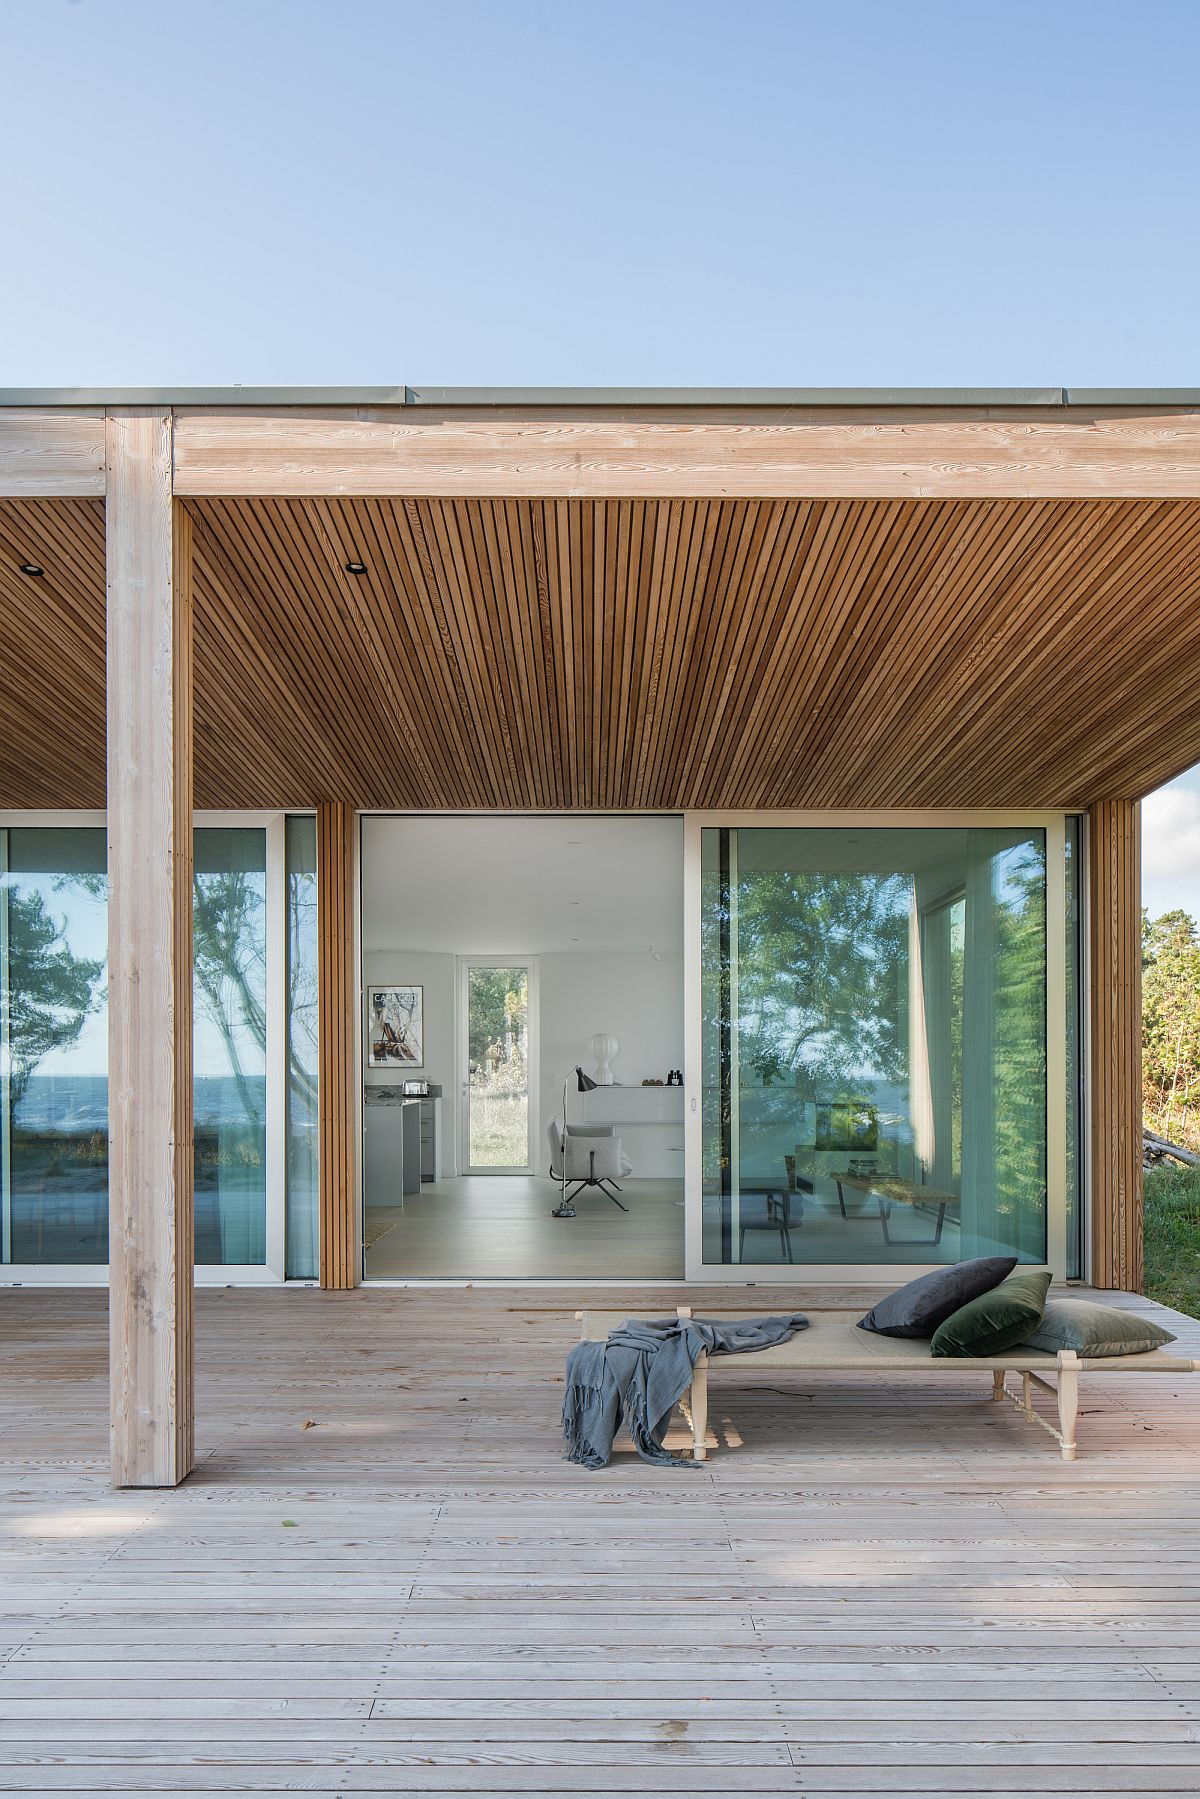 Custom larch panelling gives the cozy summer house a warm and welcoming look